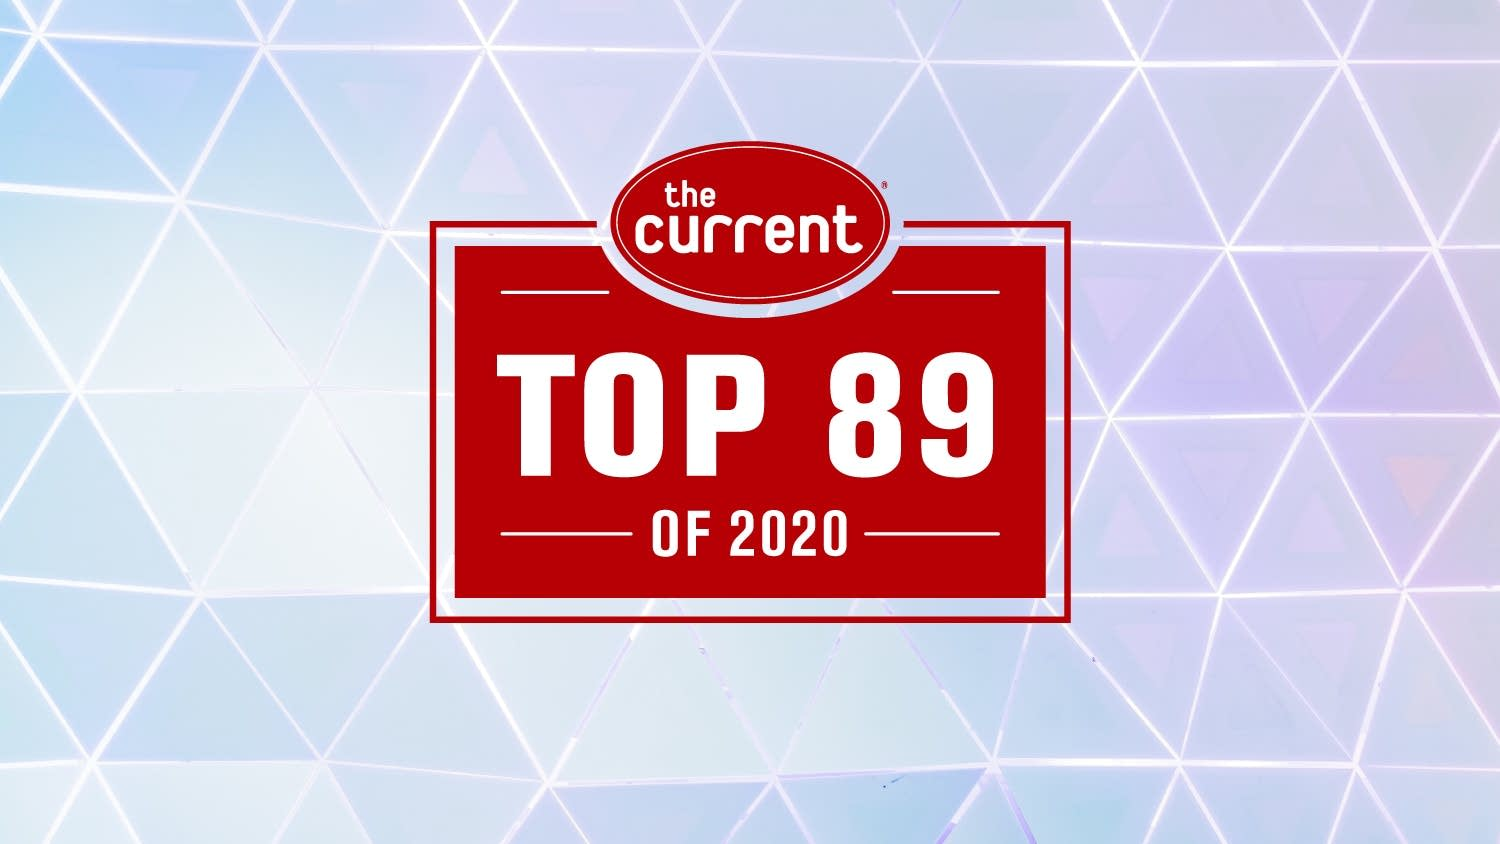 Top 89 of 2020 graphic